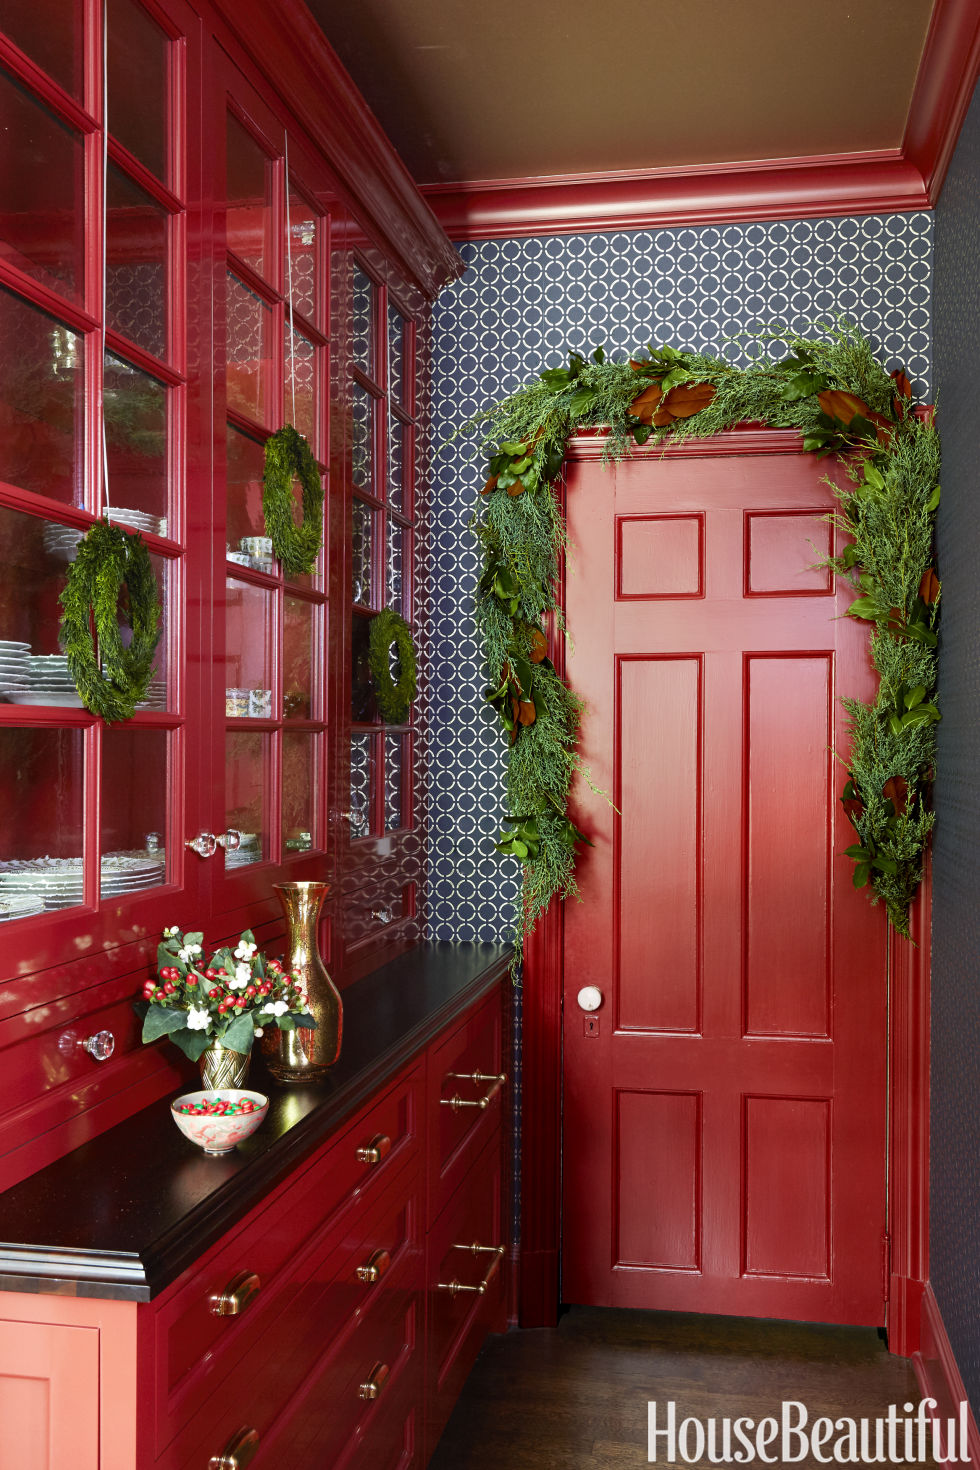 december 2016 january 2017 kitchen of the month sleek black december 2016 january 2017 kitchen of the month sleek black kitchen designed by jim dove